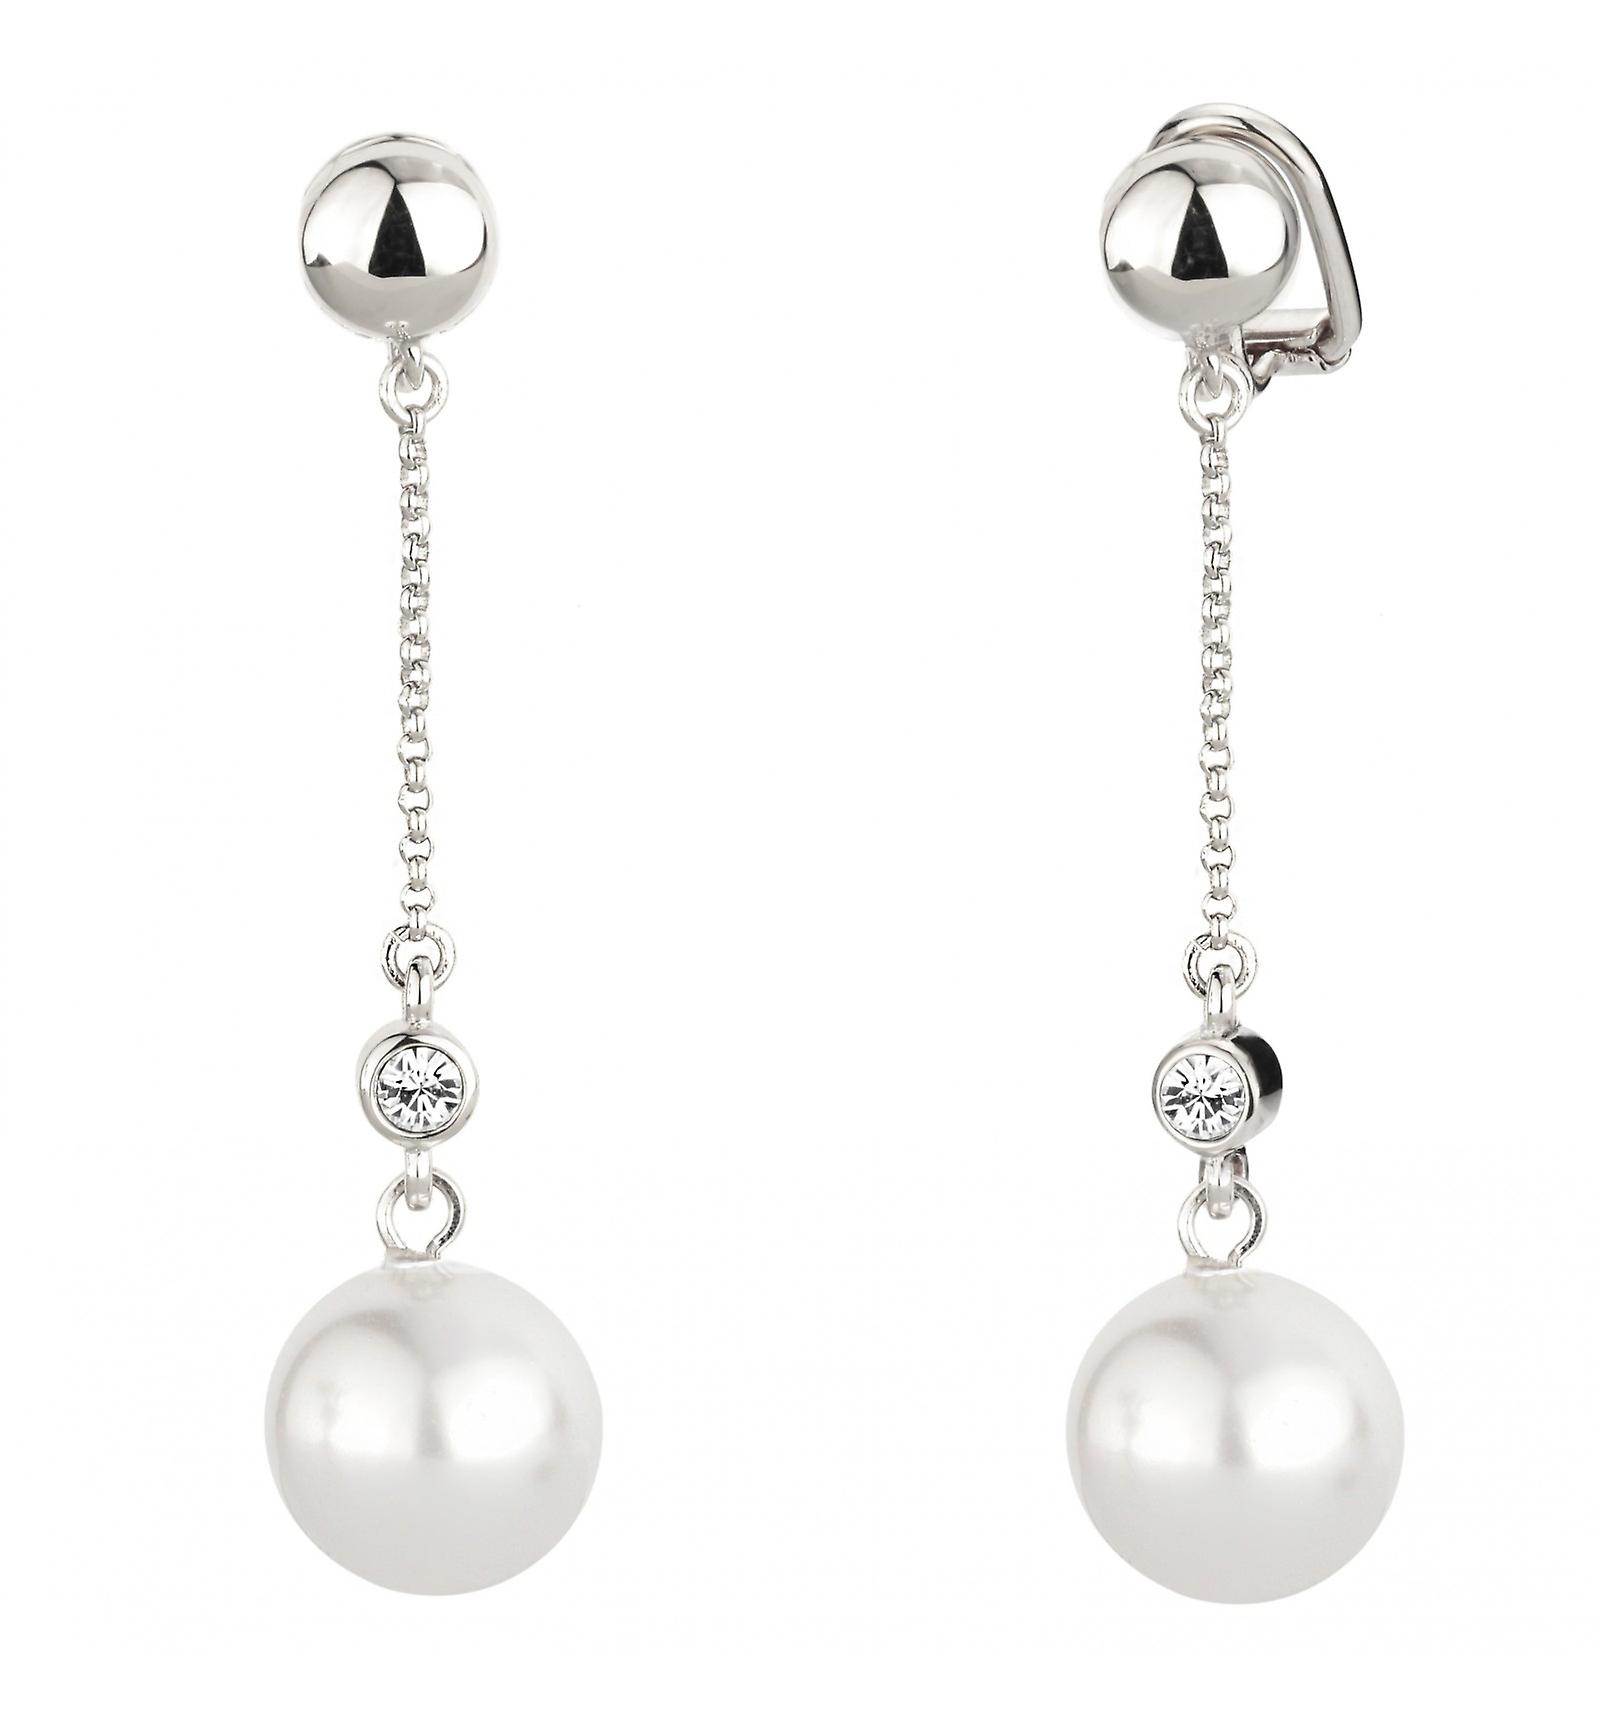 Traveller clip earring - hanging - white pearl - rhodium plated - 114140